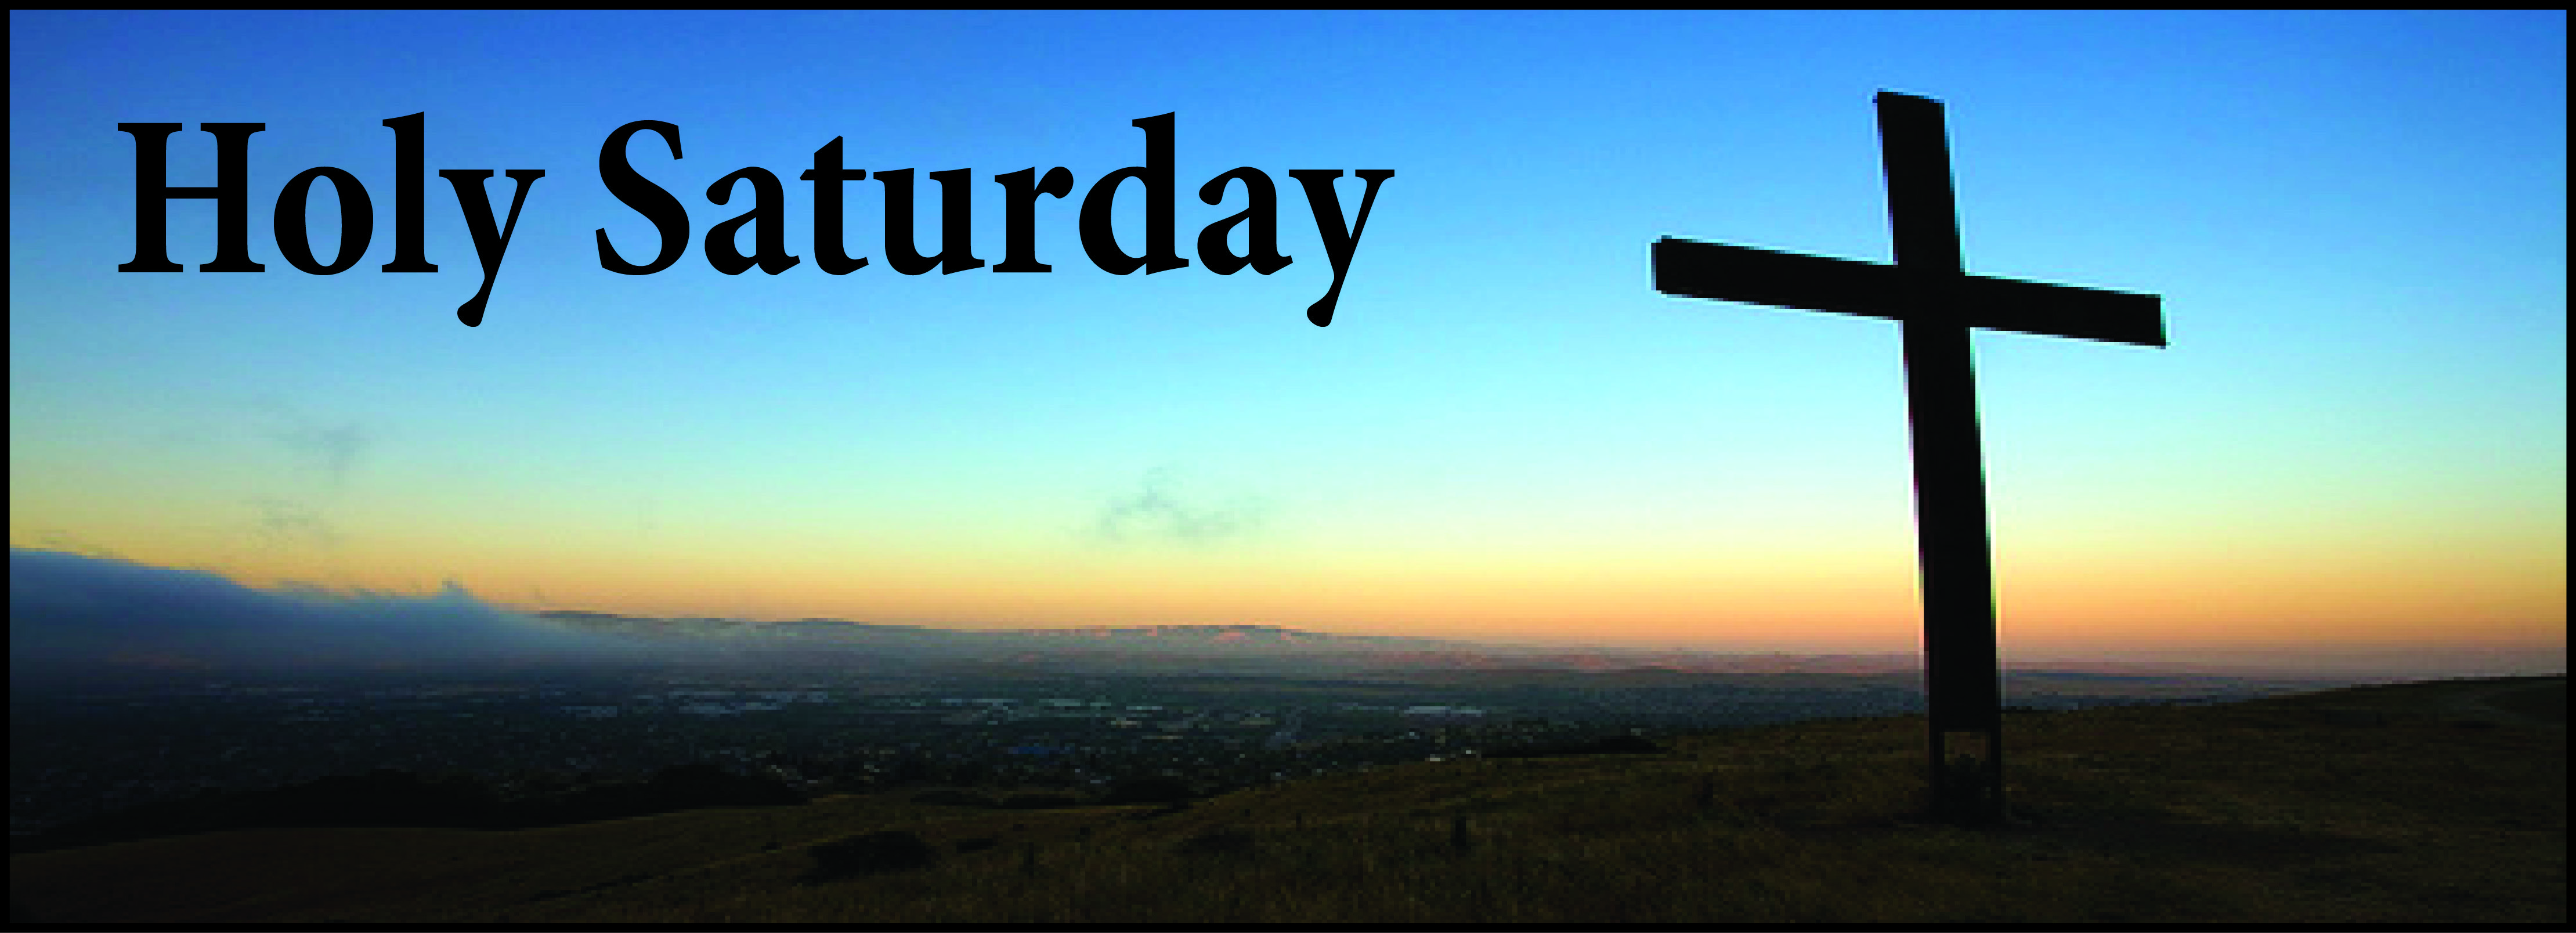 Holy Saturday Wallpapers